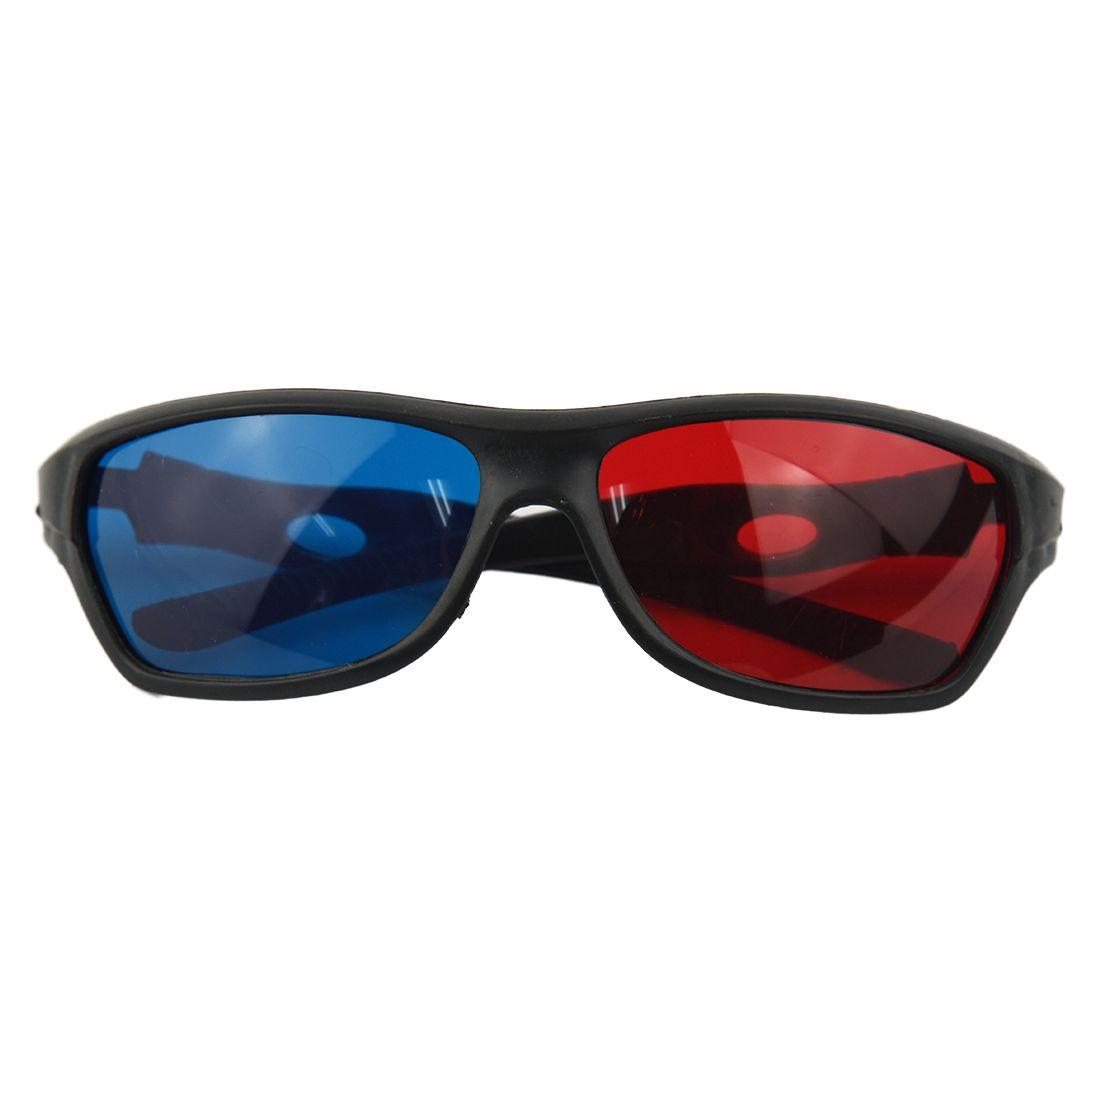 RISE Fasdga 3D Plastic glasses/VR glasses Red-blue Anaglyph Simple style 3D Glasses 3D movie game DVD vision